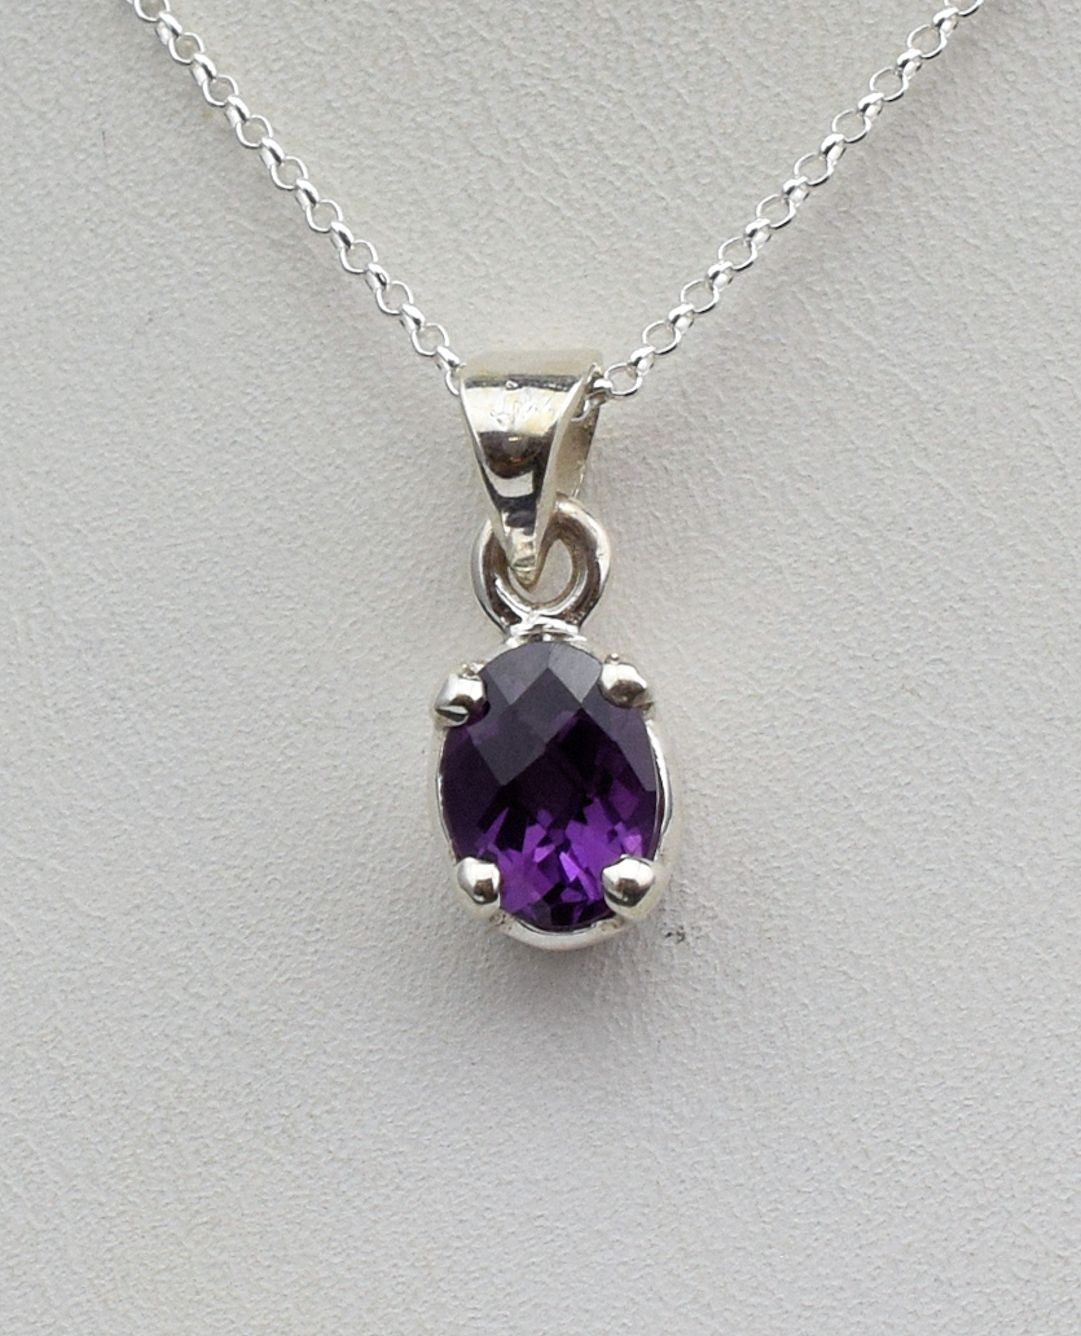 Pds0609 Amethyst Pendant in Sterling Silver